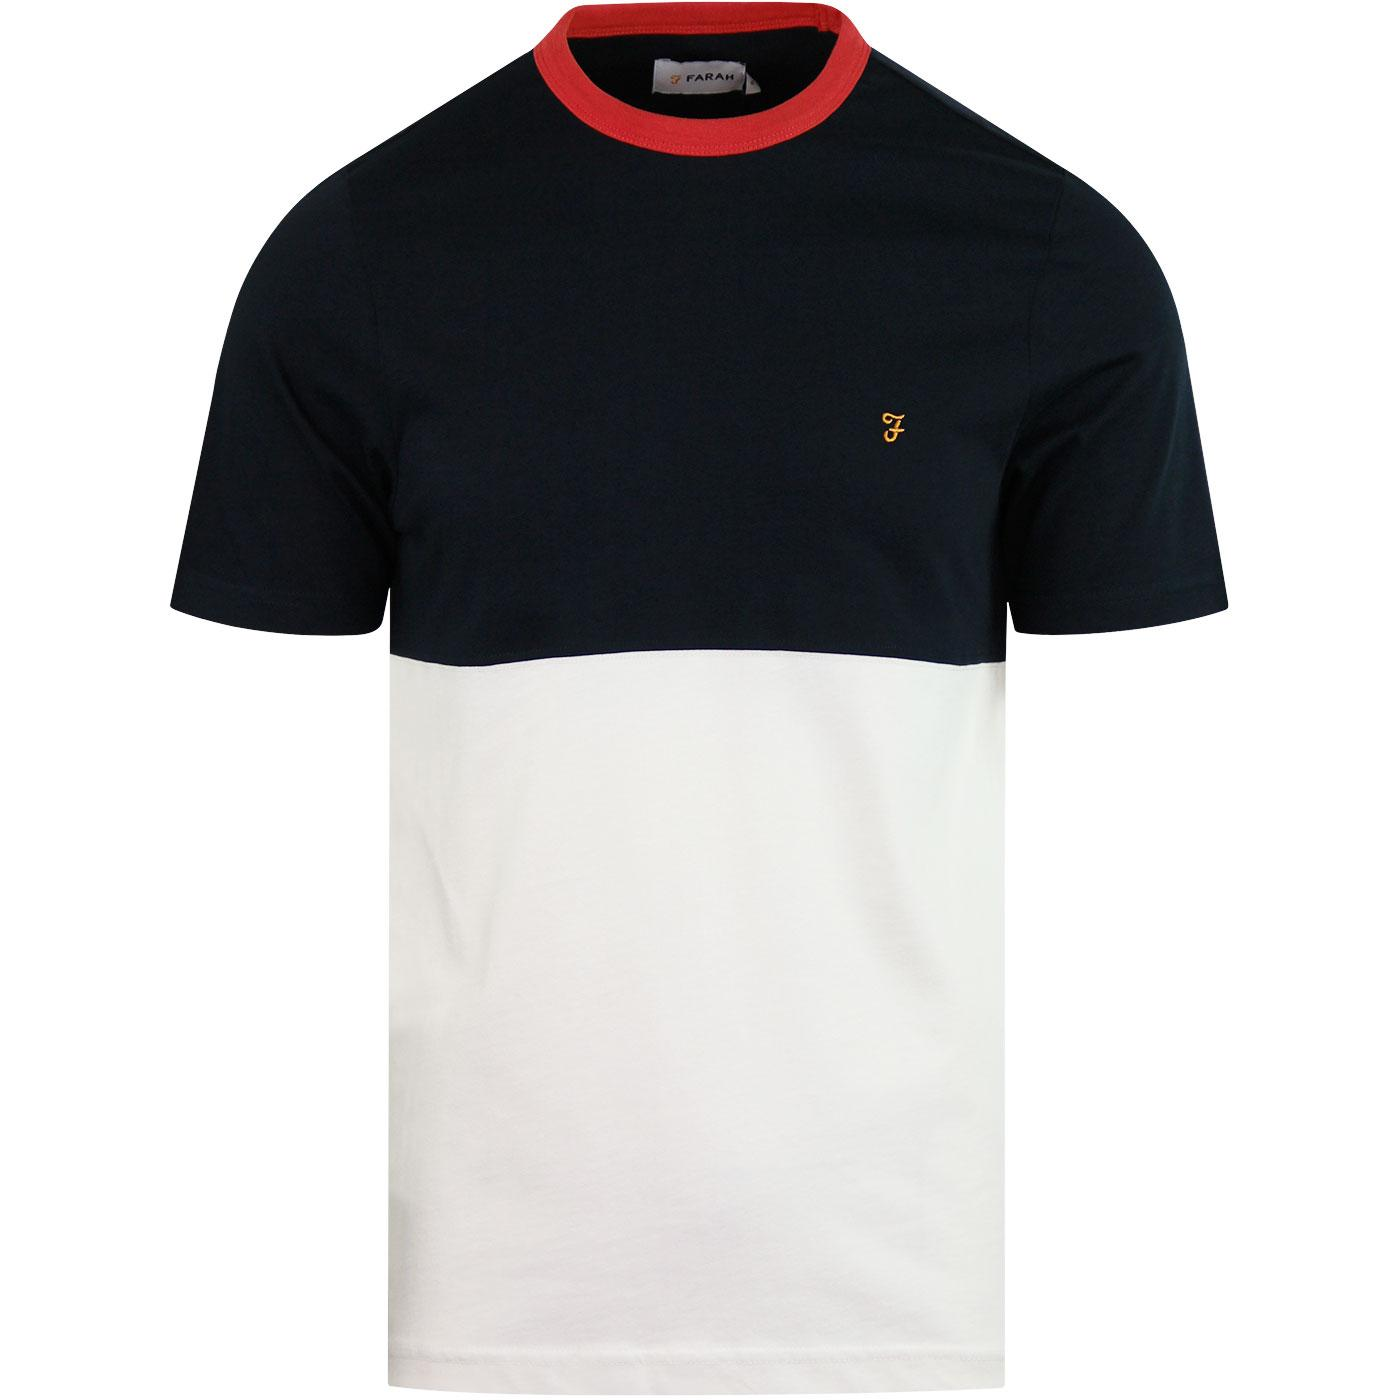 Ewood FARAH Retro Contrast Colour Panel Tee (TN)